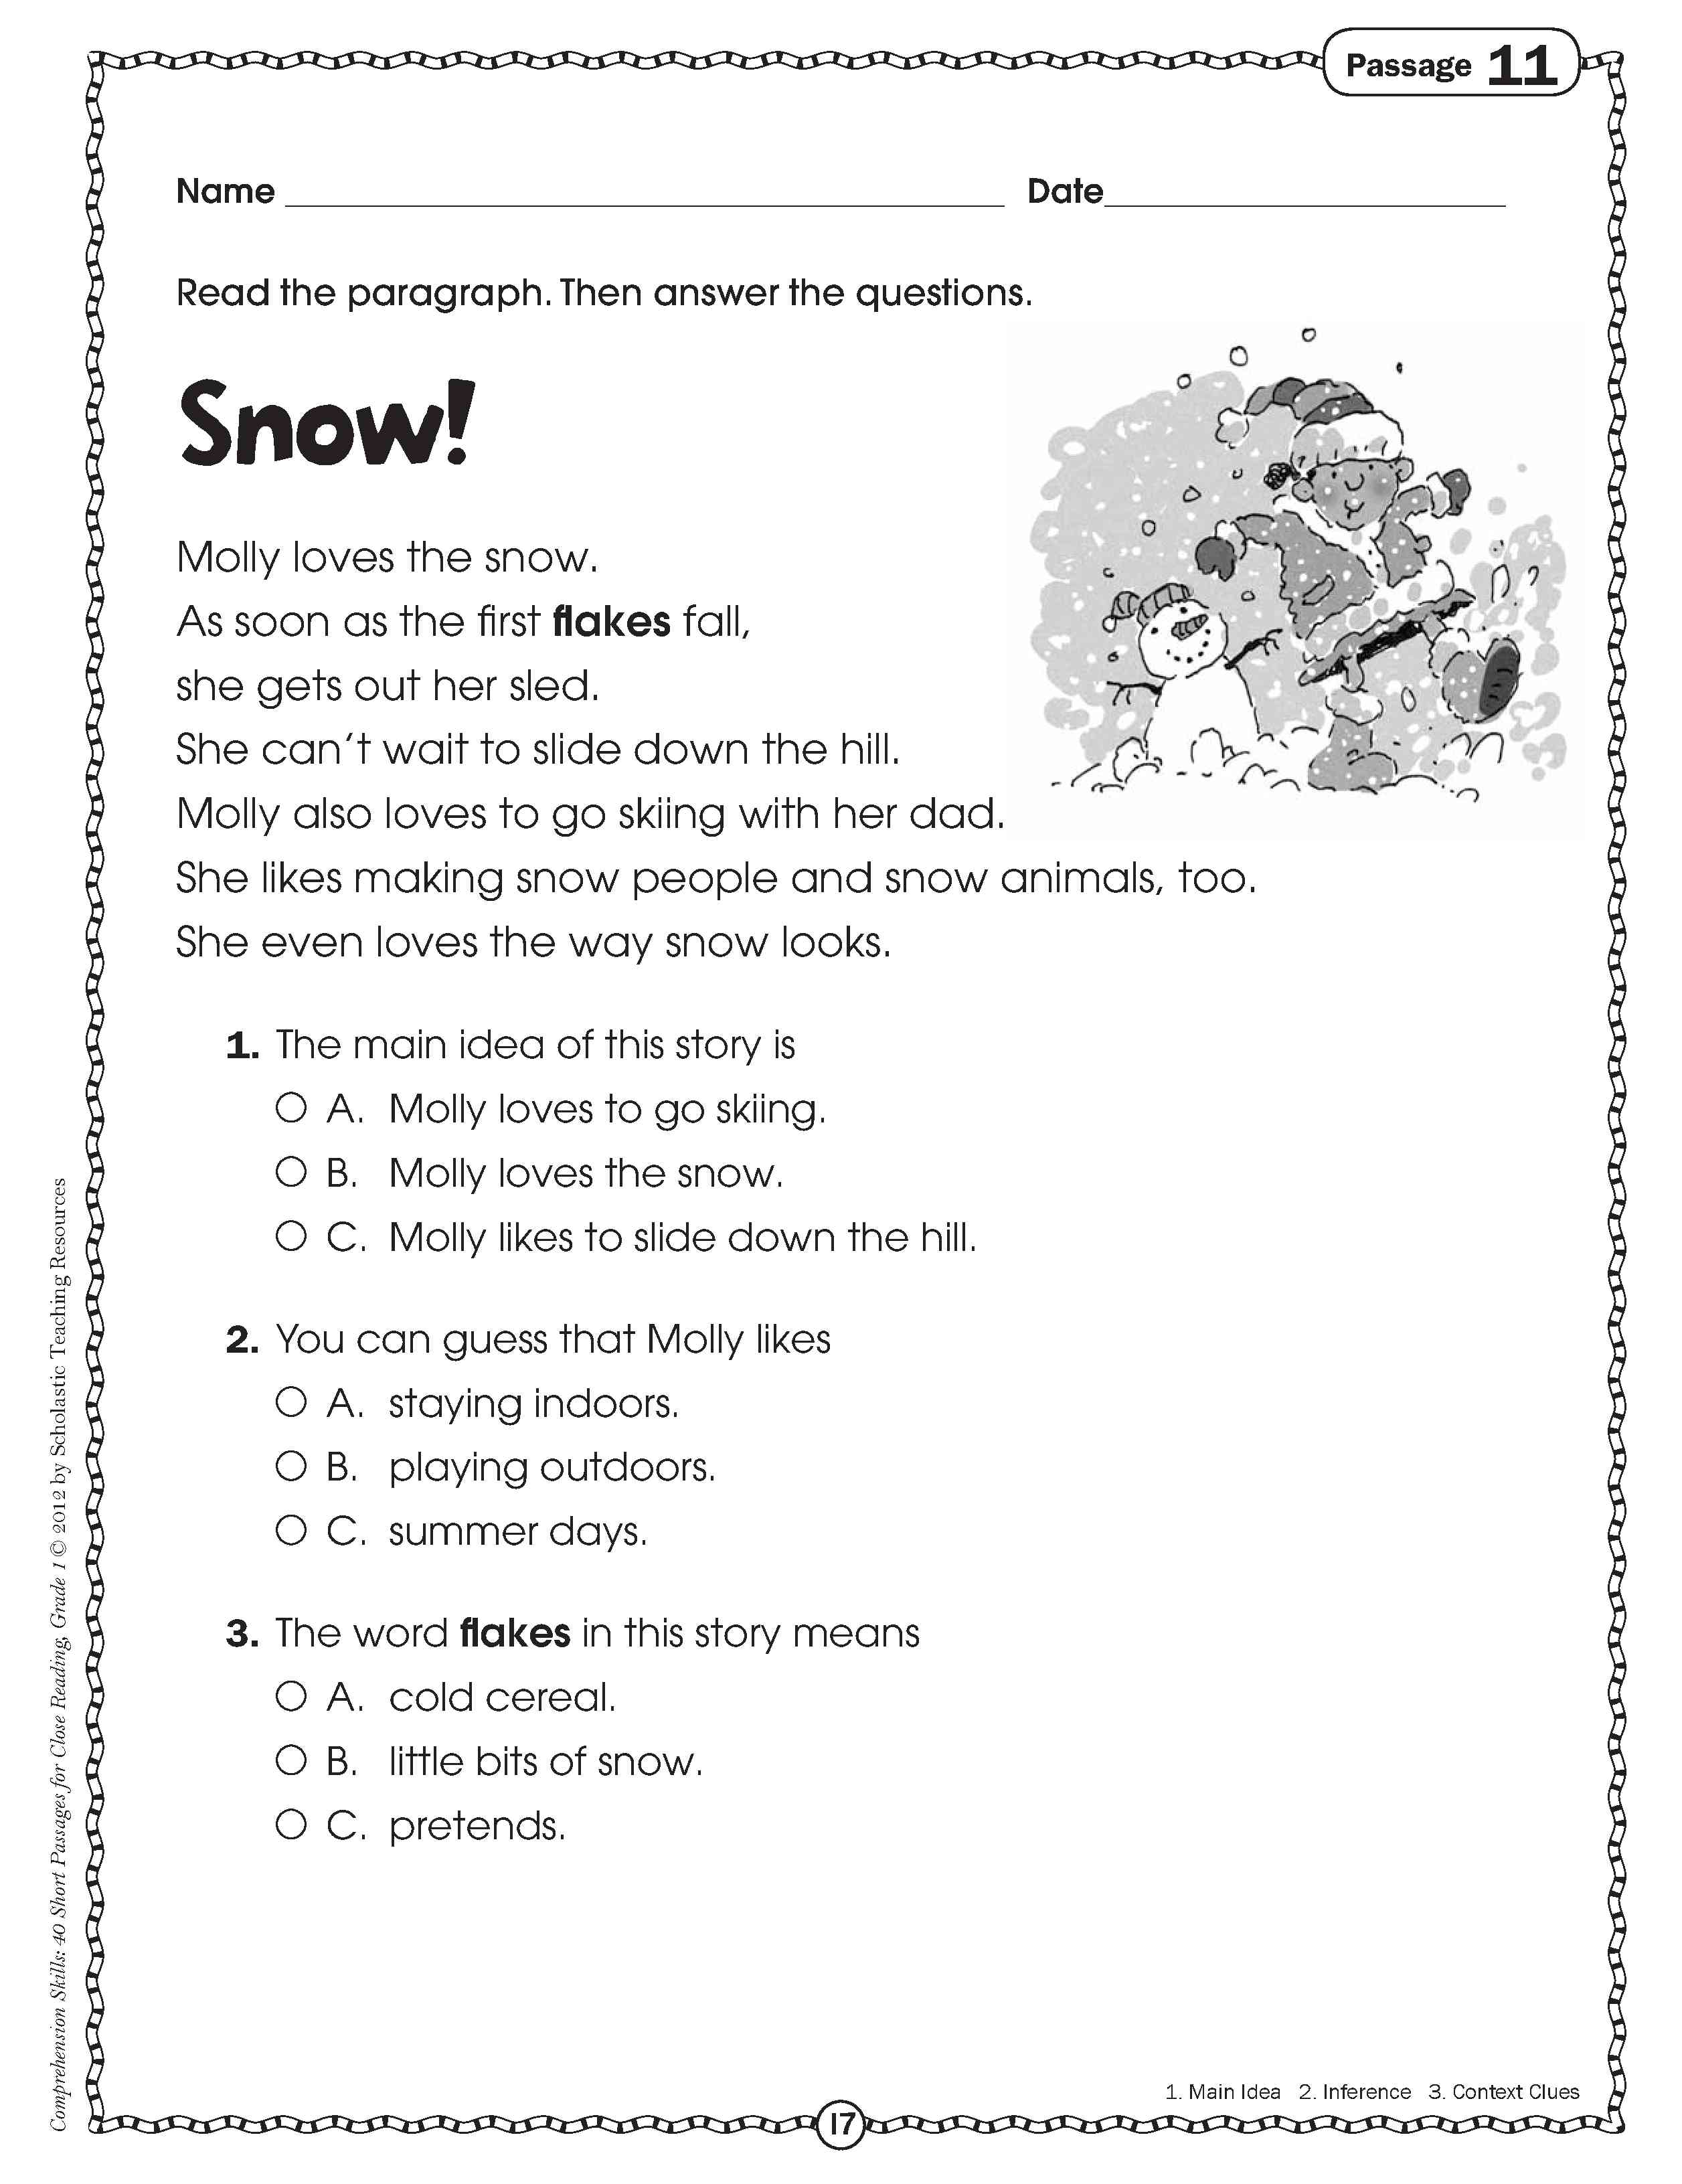 worksheet Teach Your Child To Read In 100 Easy Lessons Worksheets get crafty with your common core reading this holiday season simile snowflake poetry close for grade one